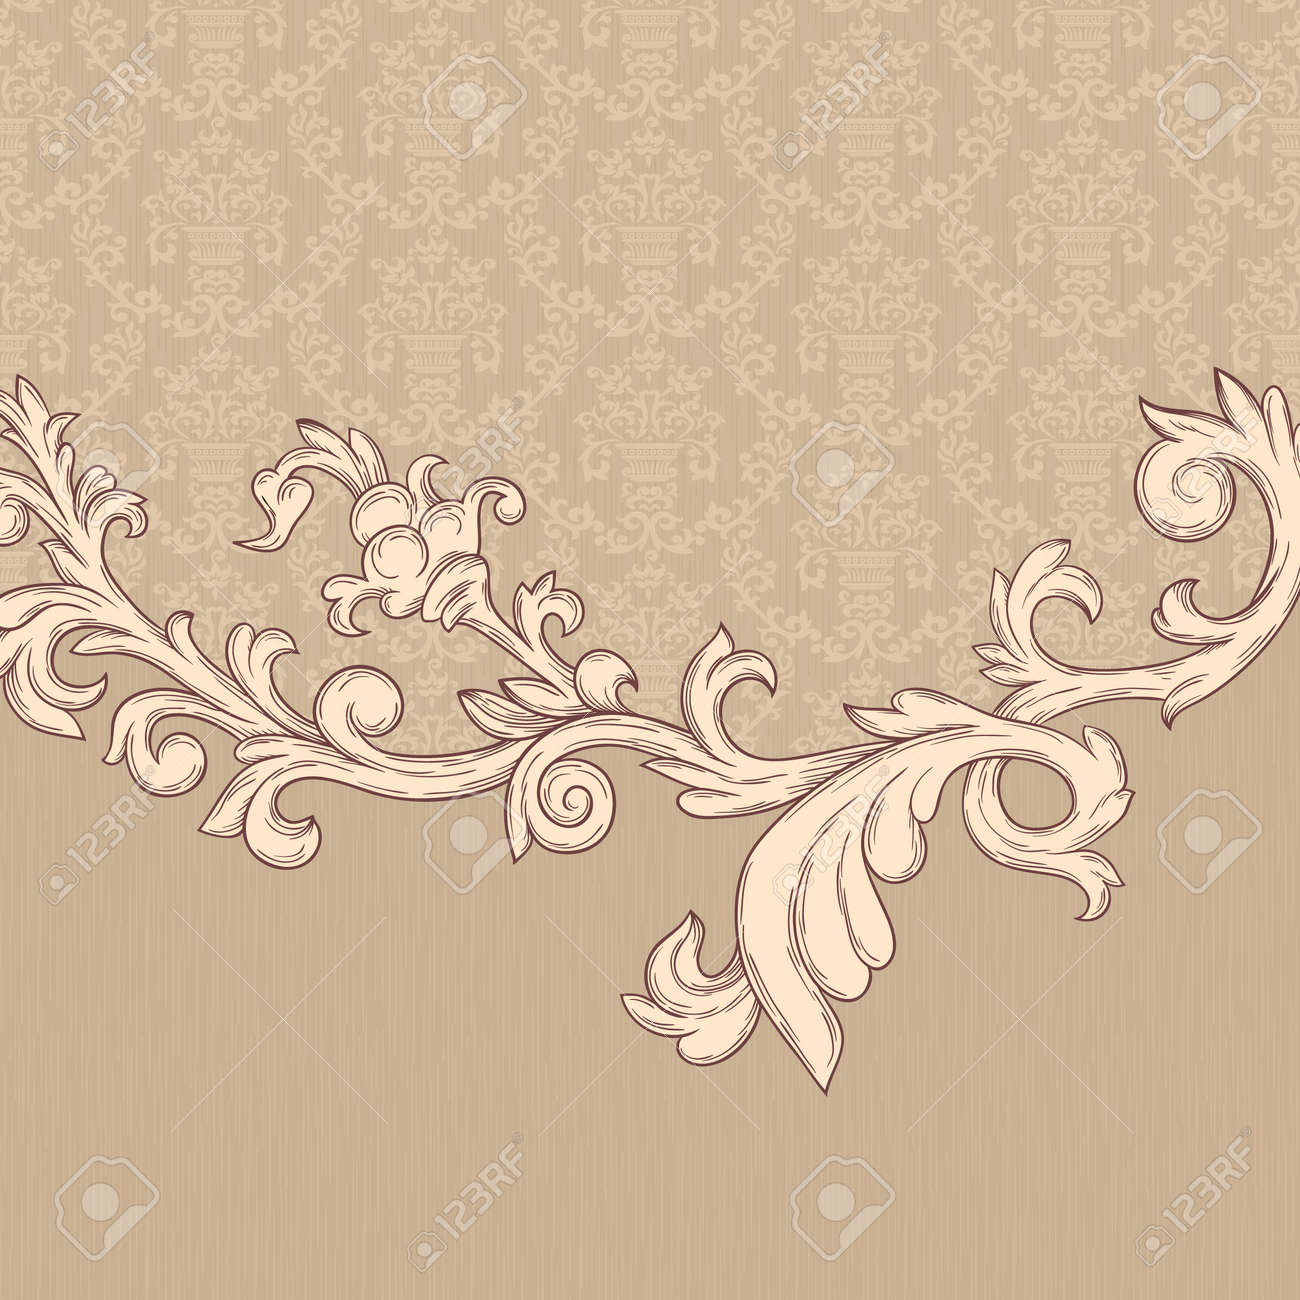 Vintage background with damask pattern in retro style Stock Vector - 11964886